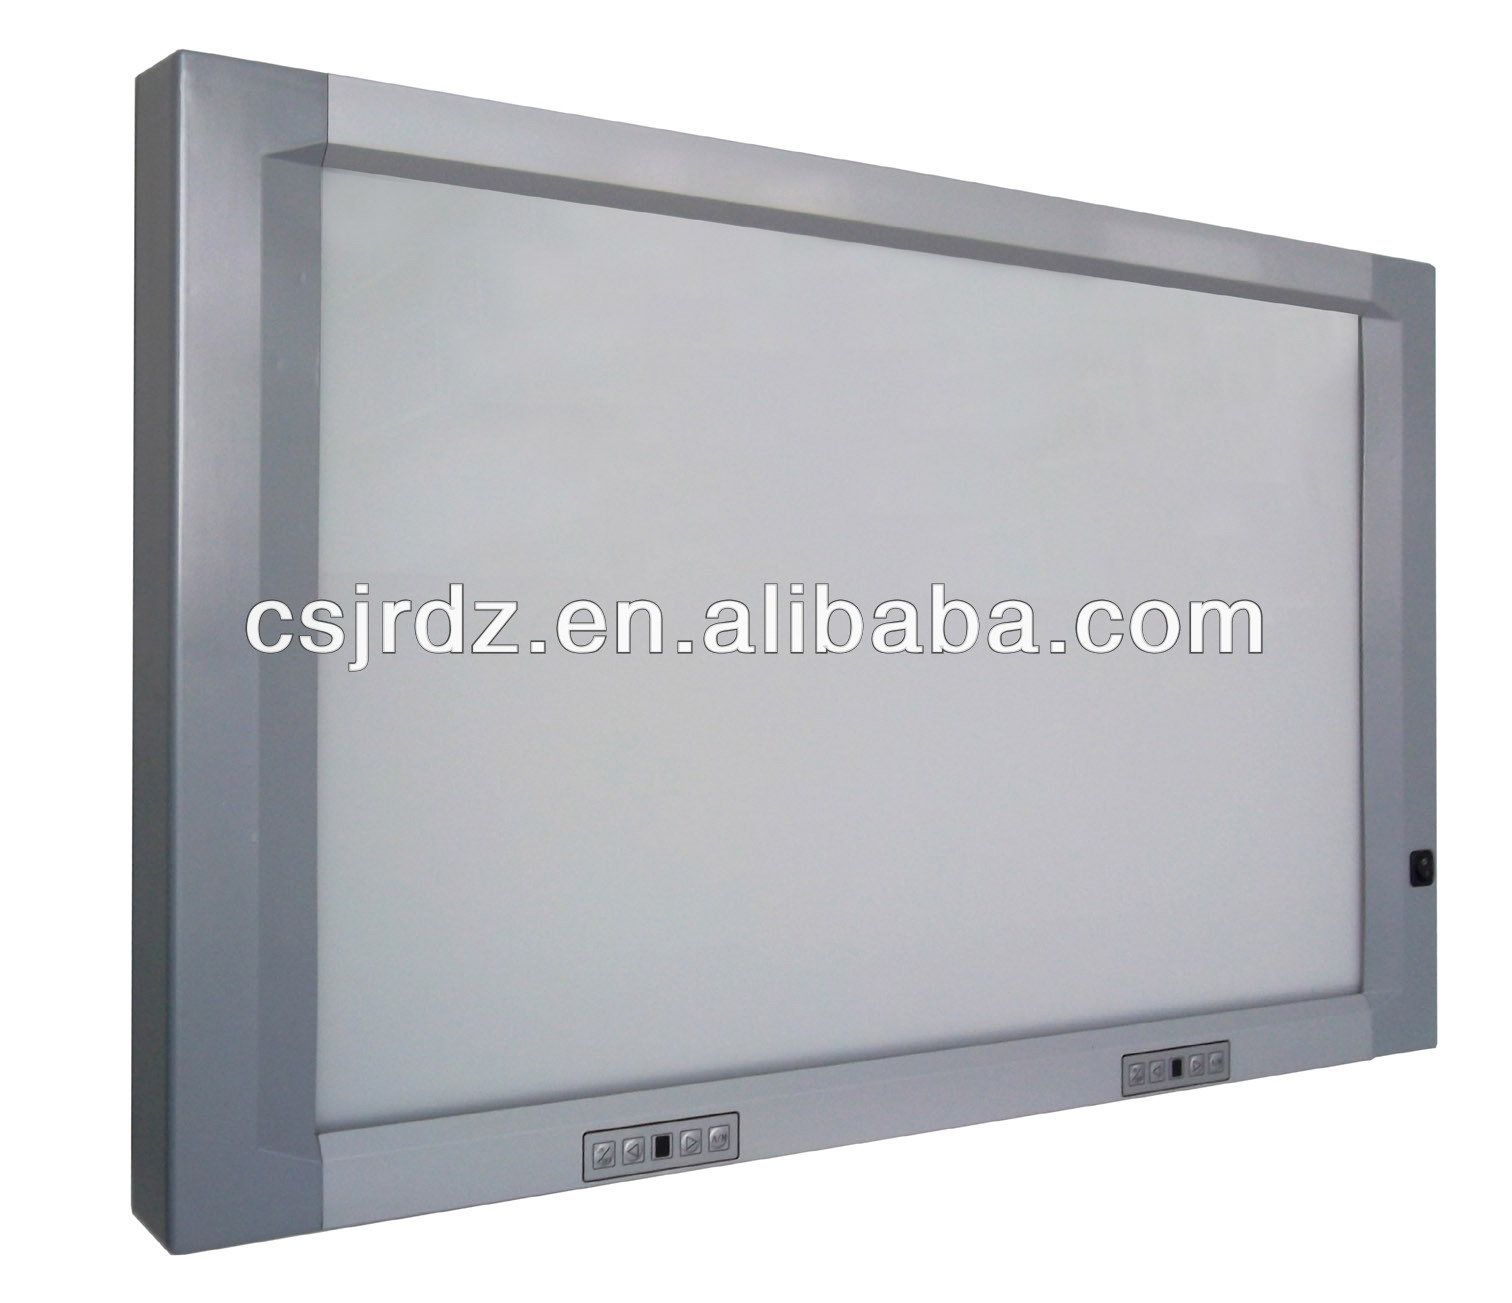 LED medical radiography film viewer